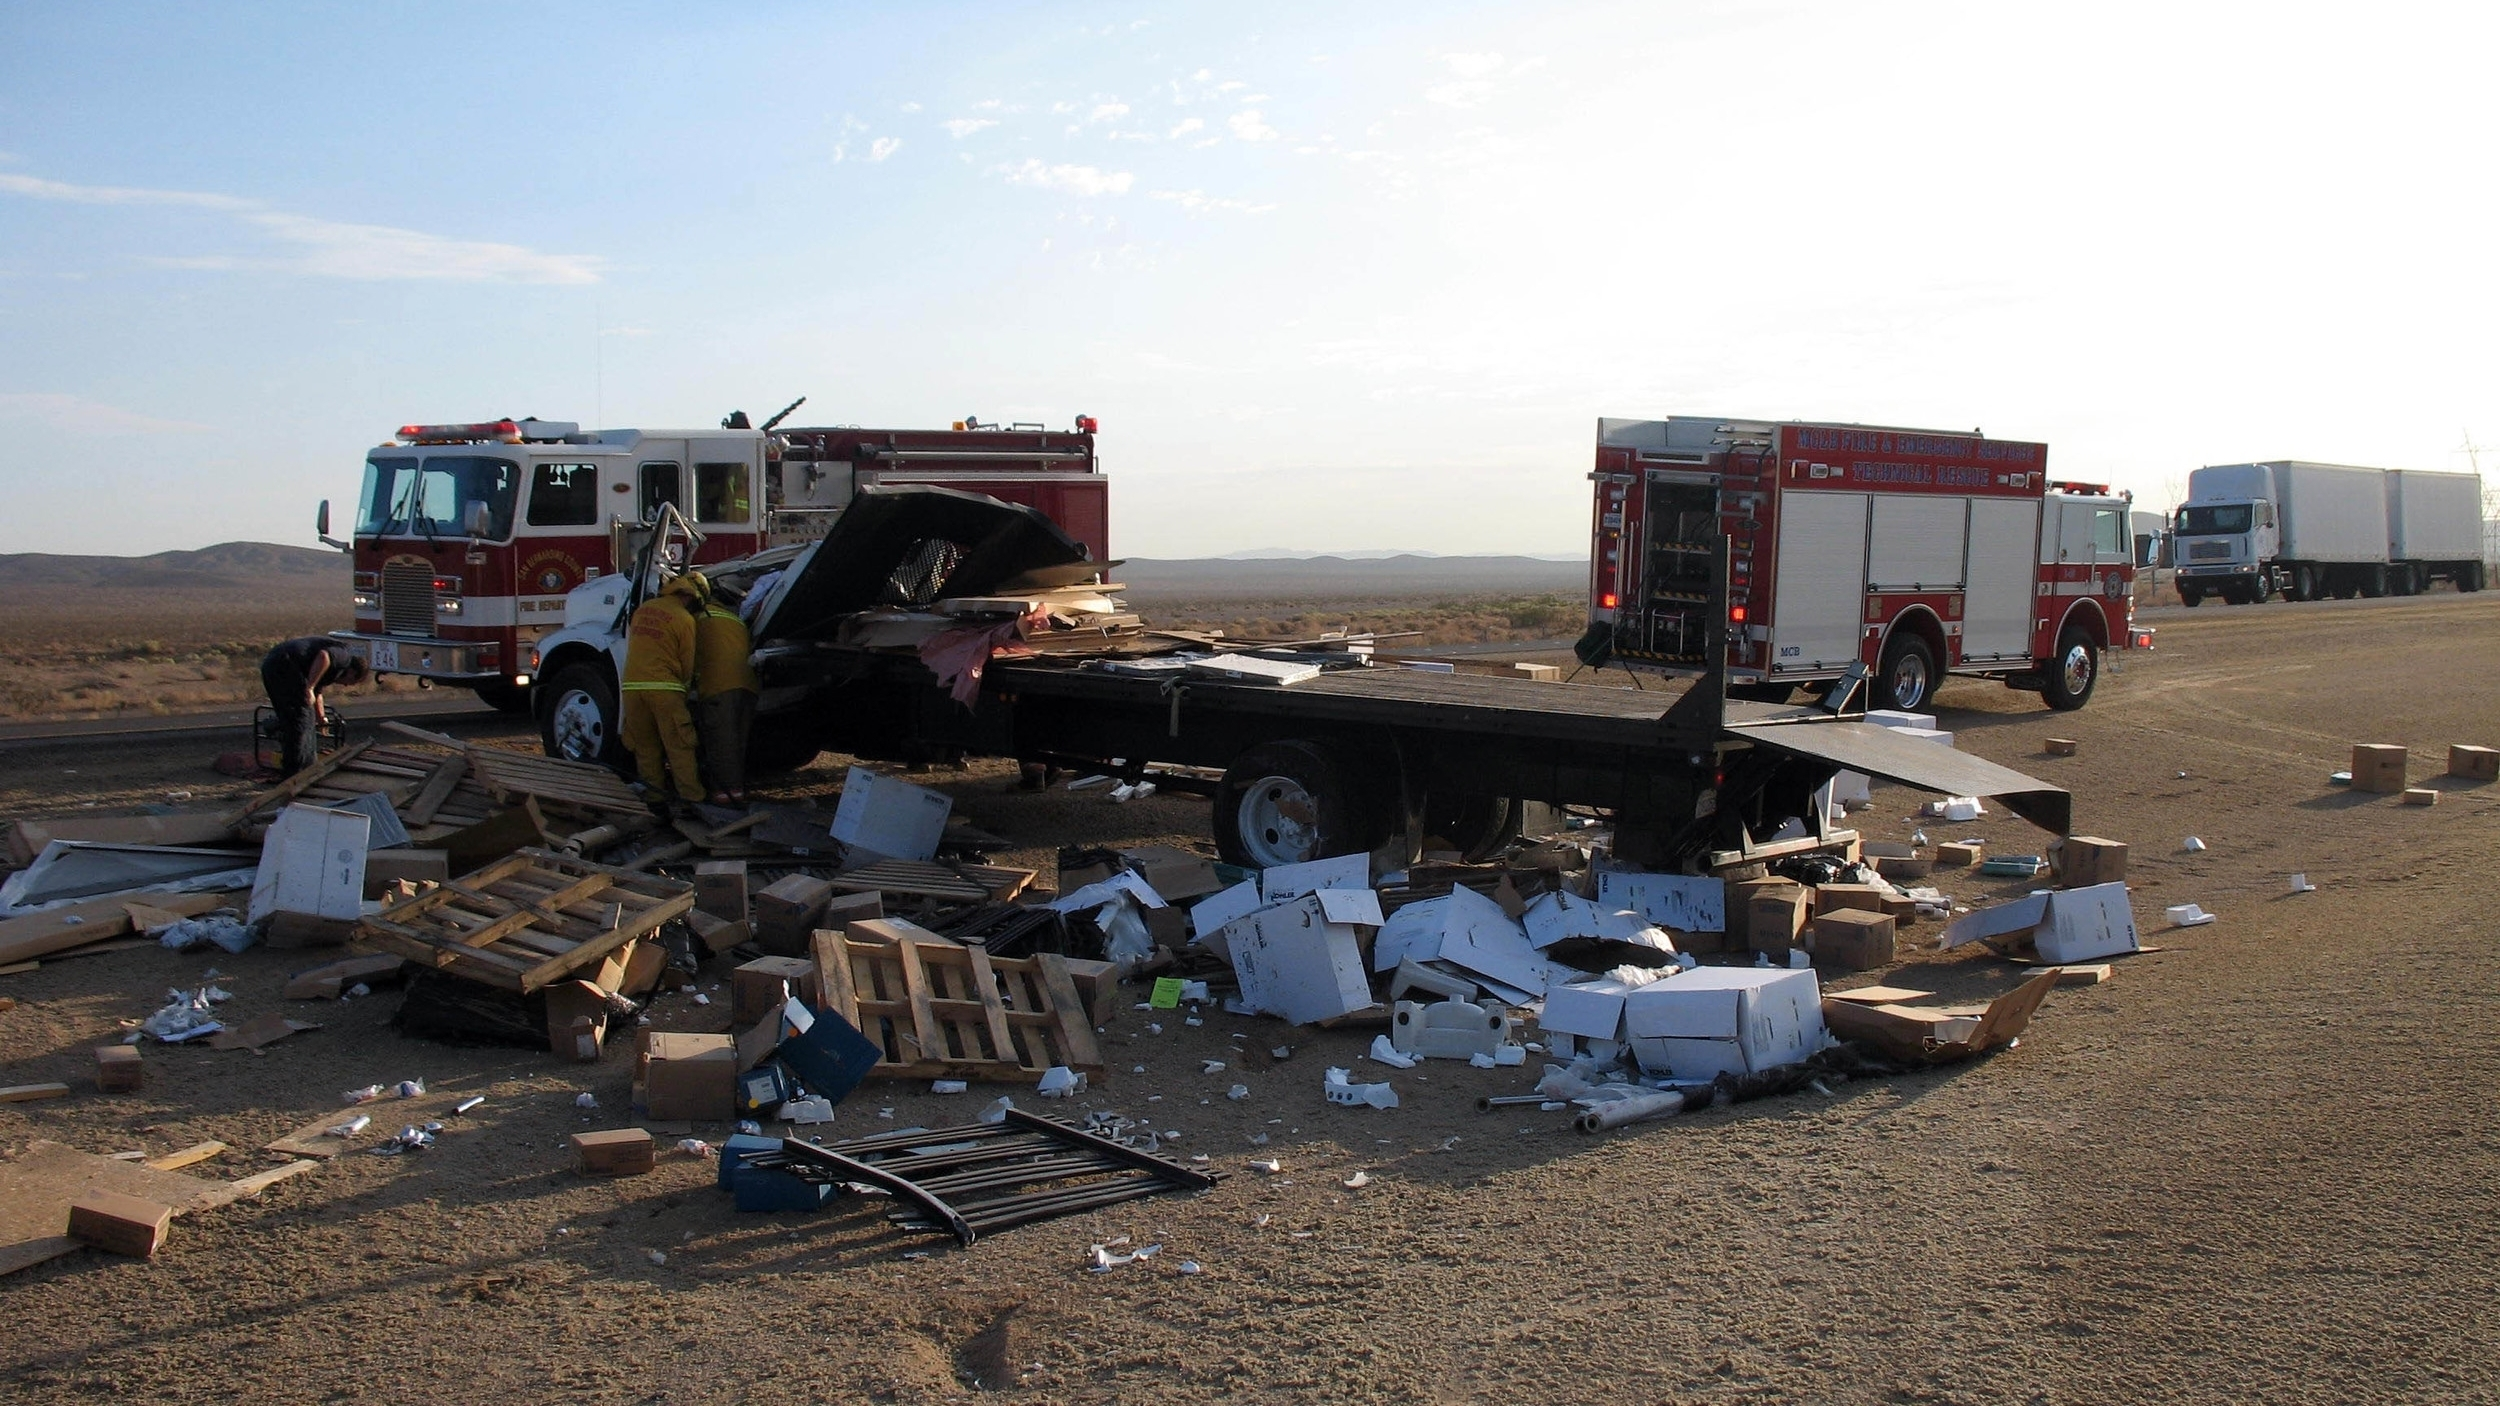 The scene of the accident as rescue workers free Hal from the truck.